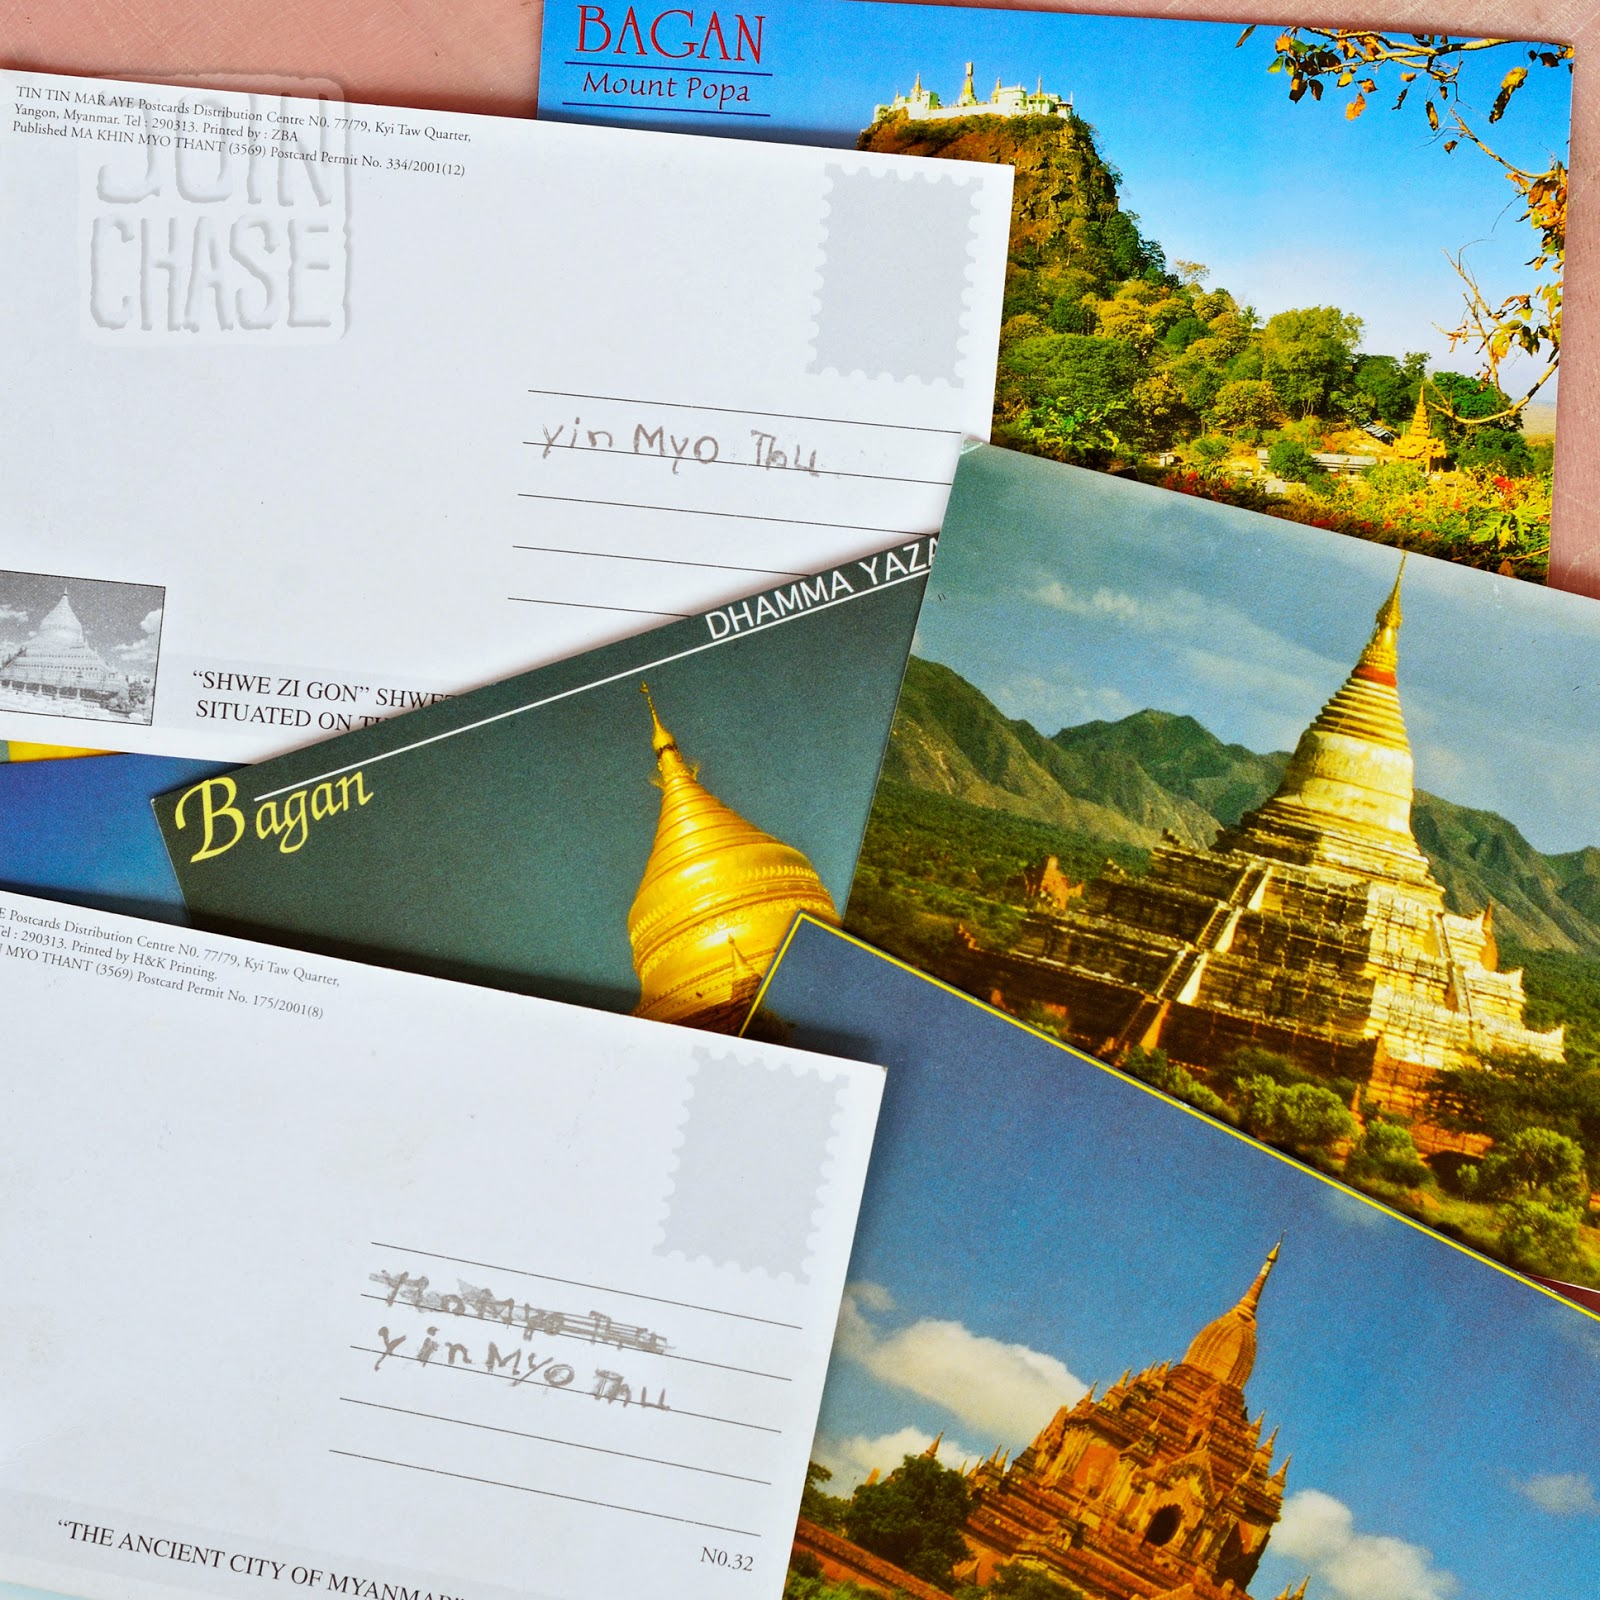 A pile of postcards from Bagan, Myanmar.